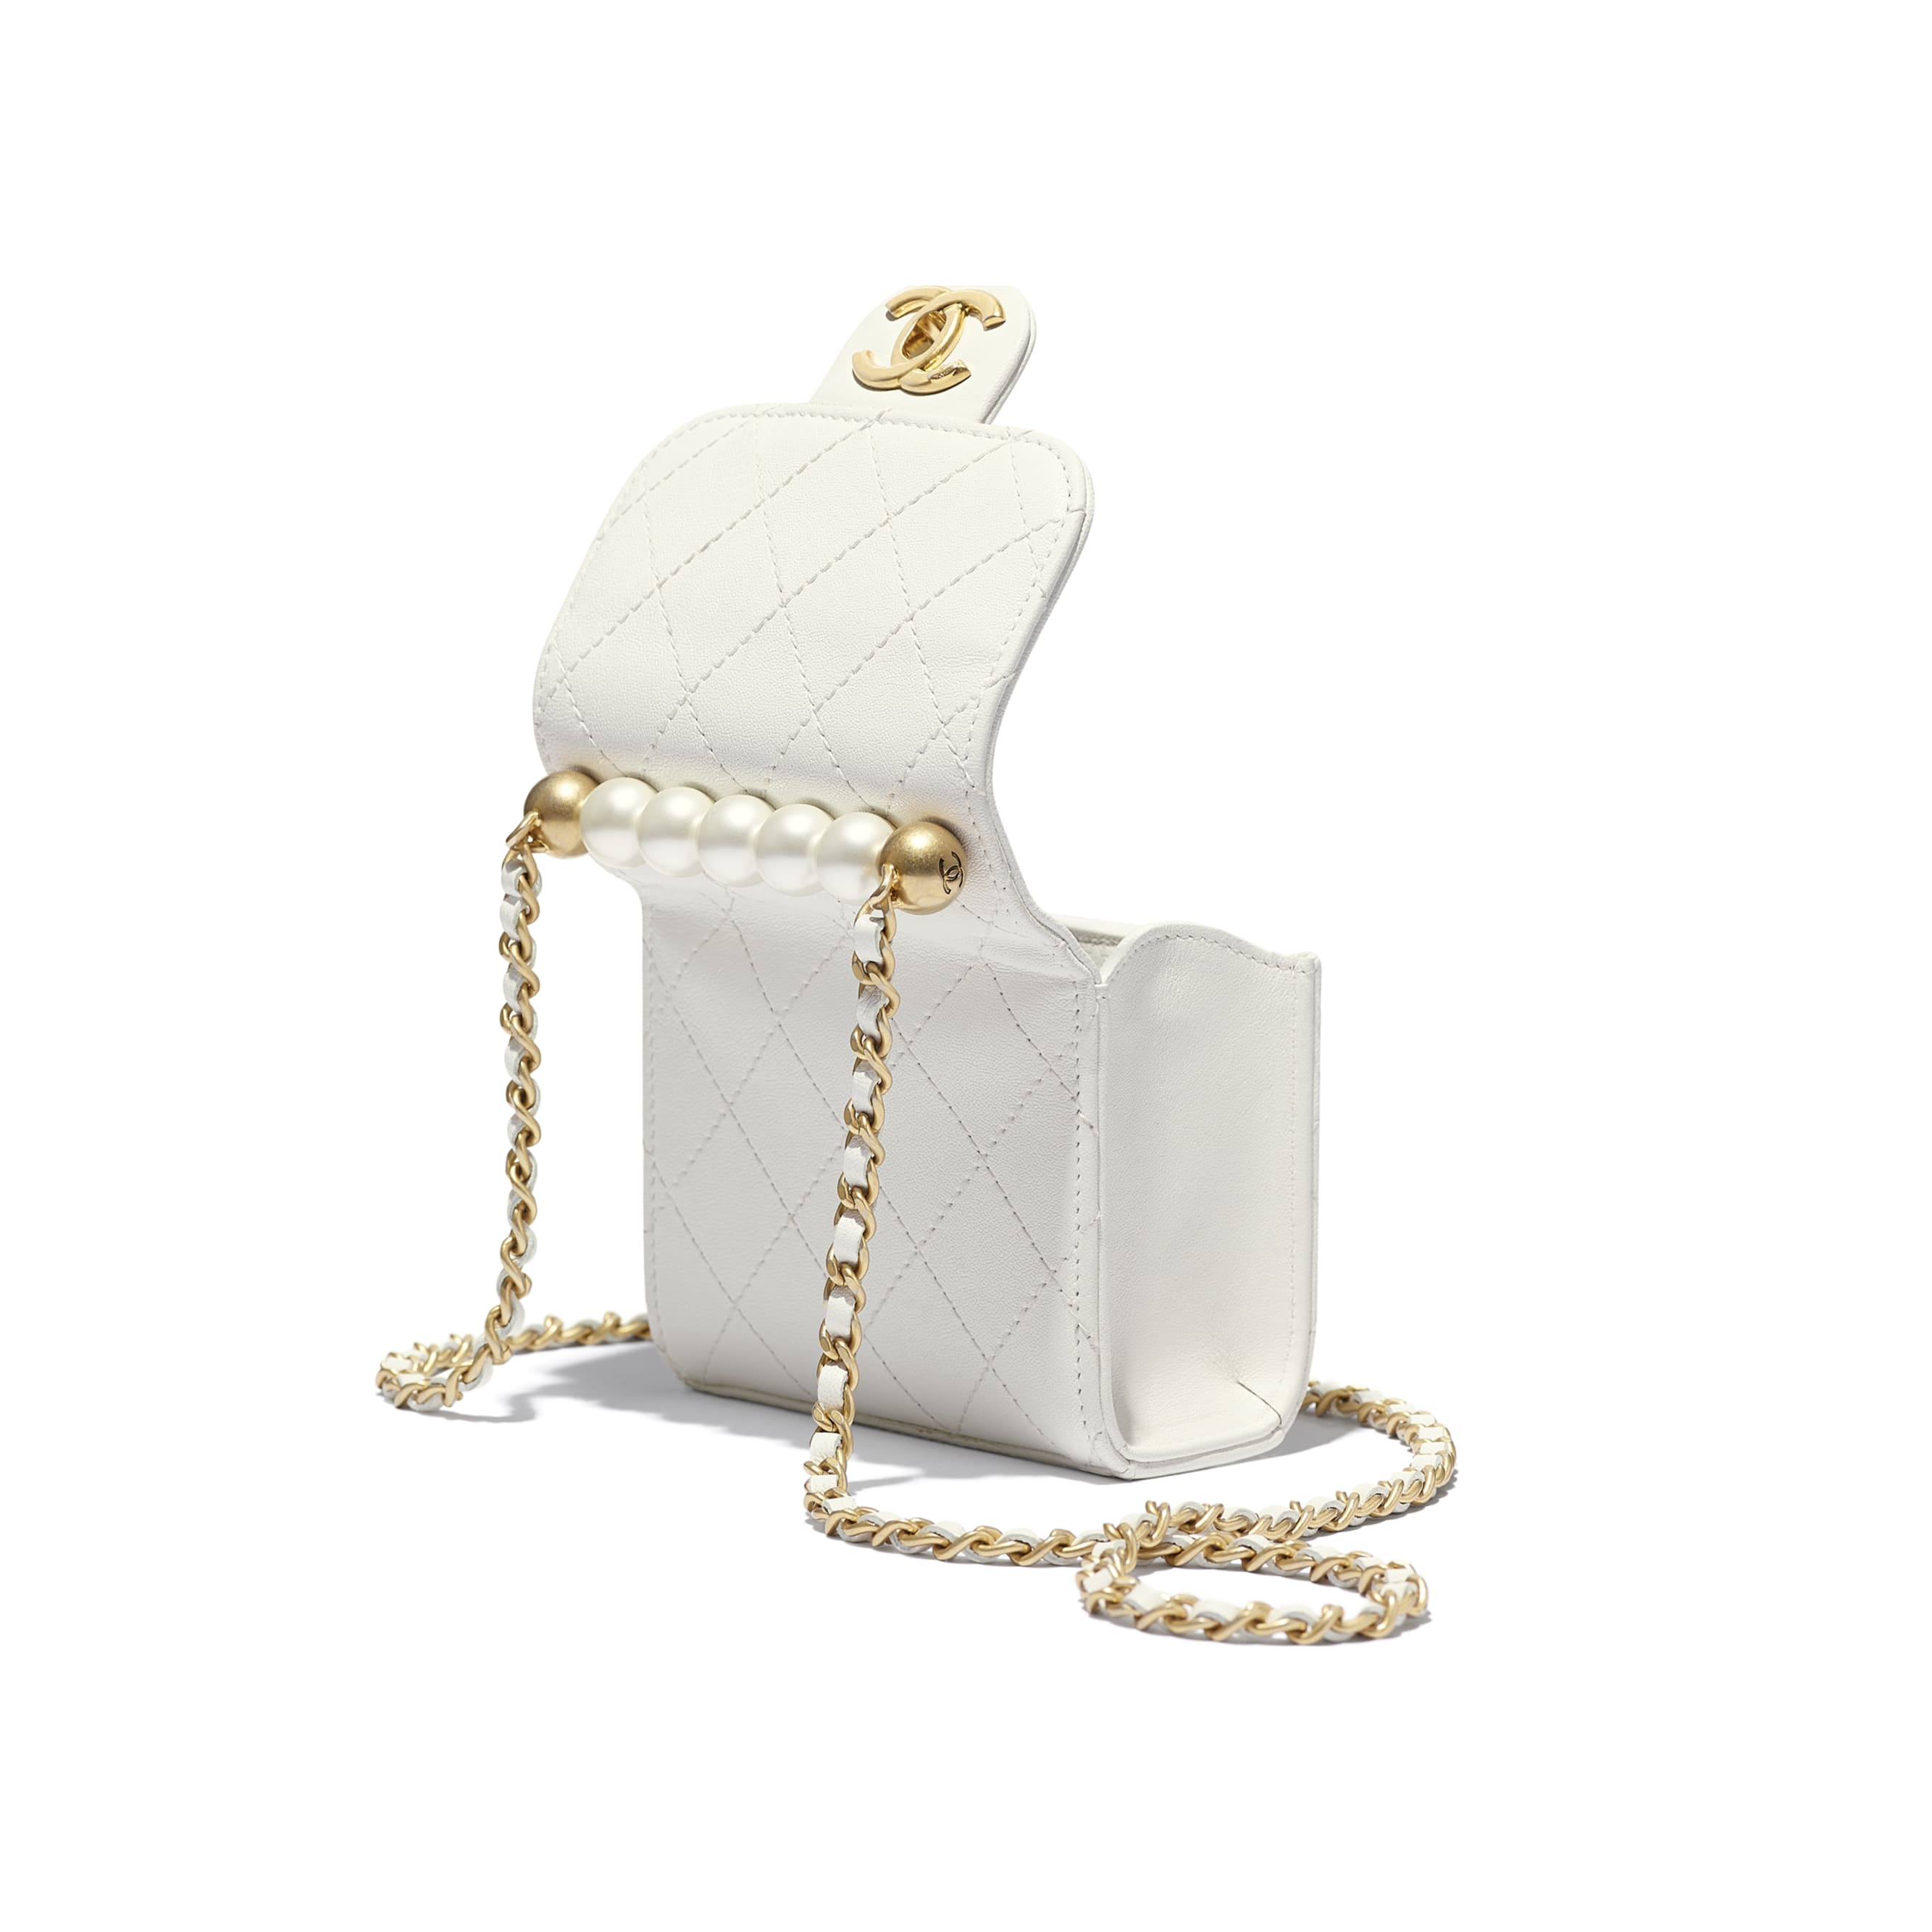 Clutch With Chain - White - Goatskin, Imitation Pearls & Gold-Tone Metal - Extra view - see standard sized version